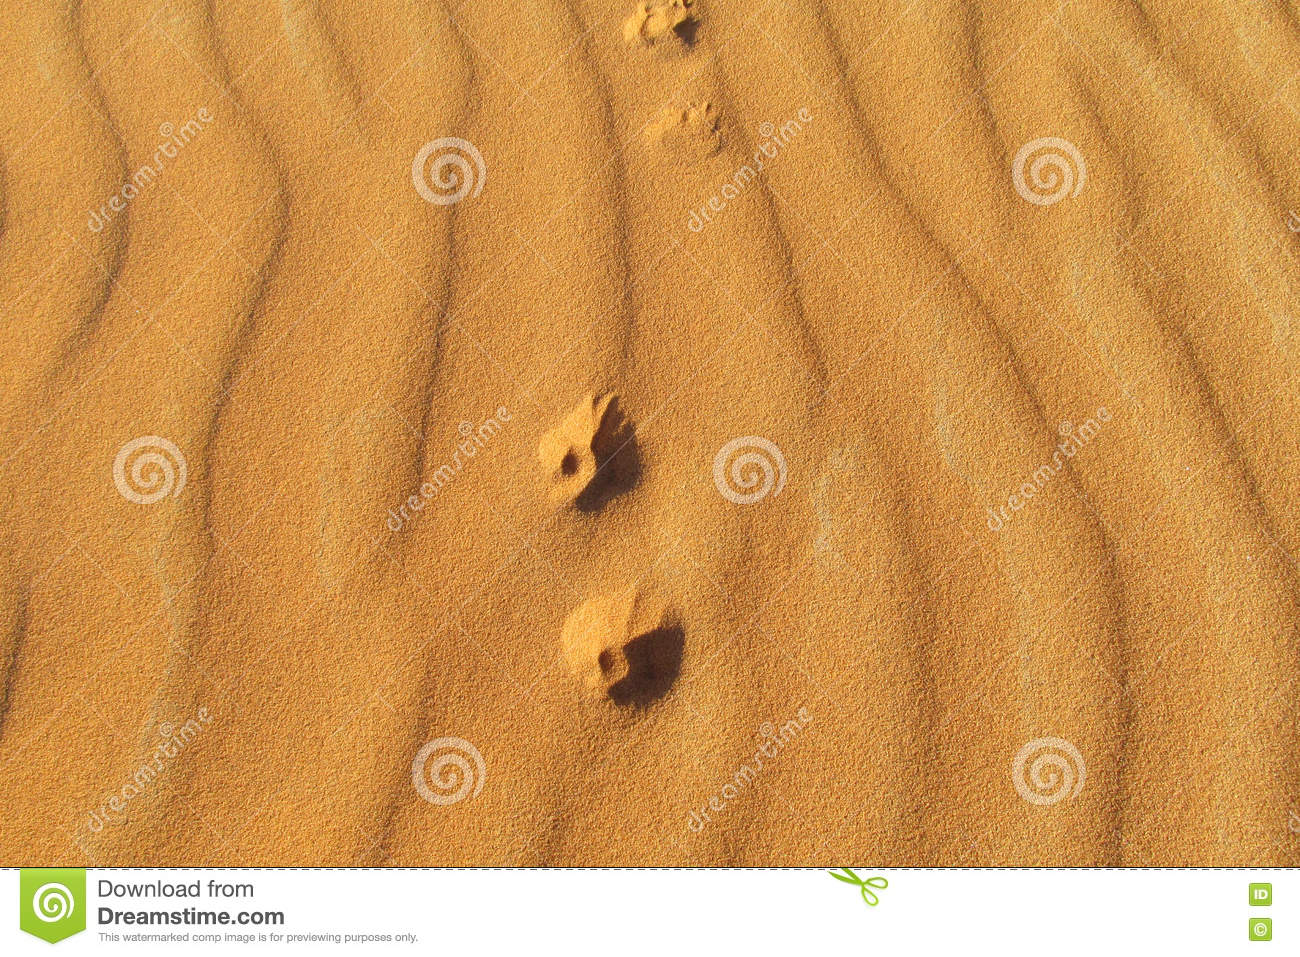 Foot prints of a small fox on sand